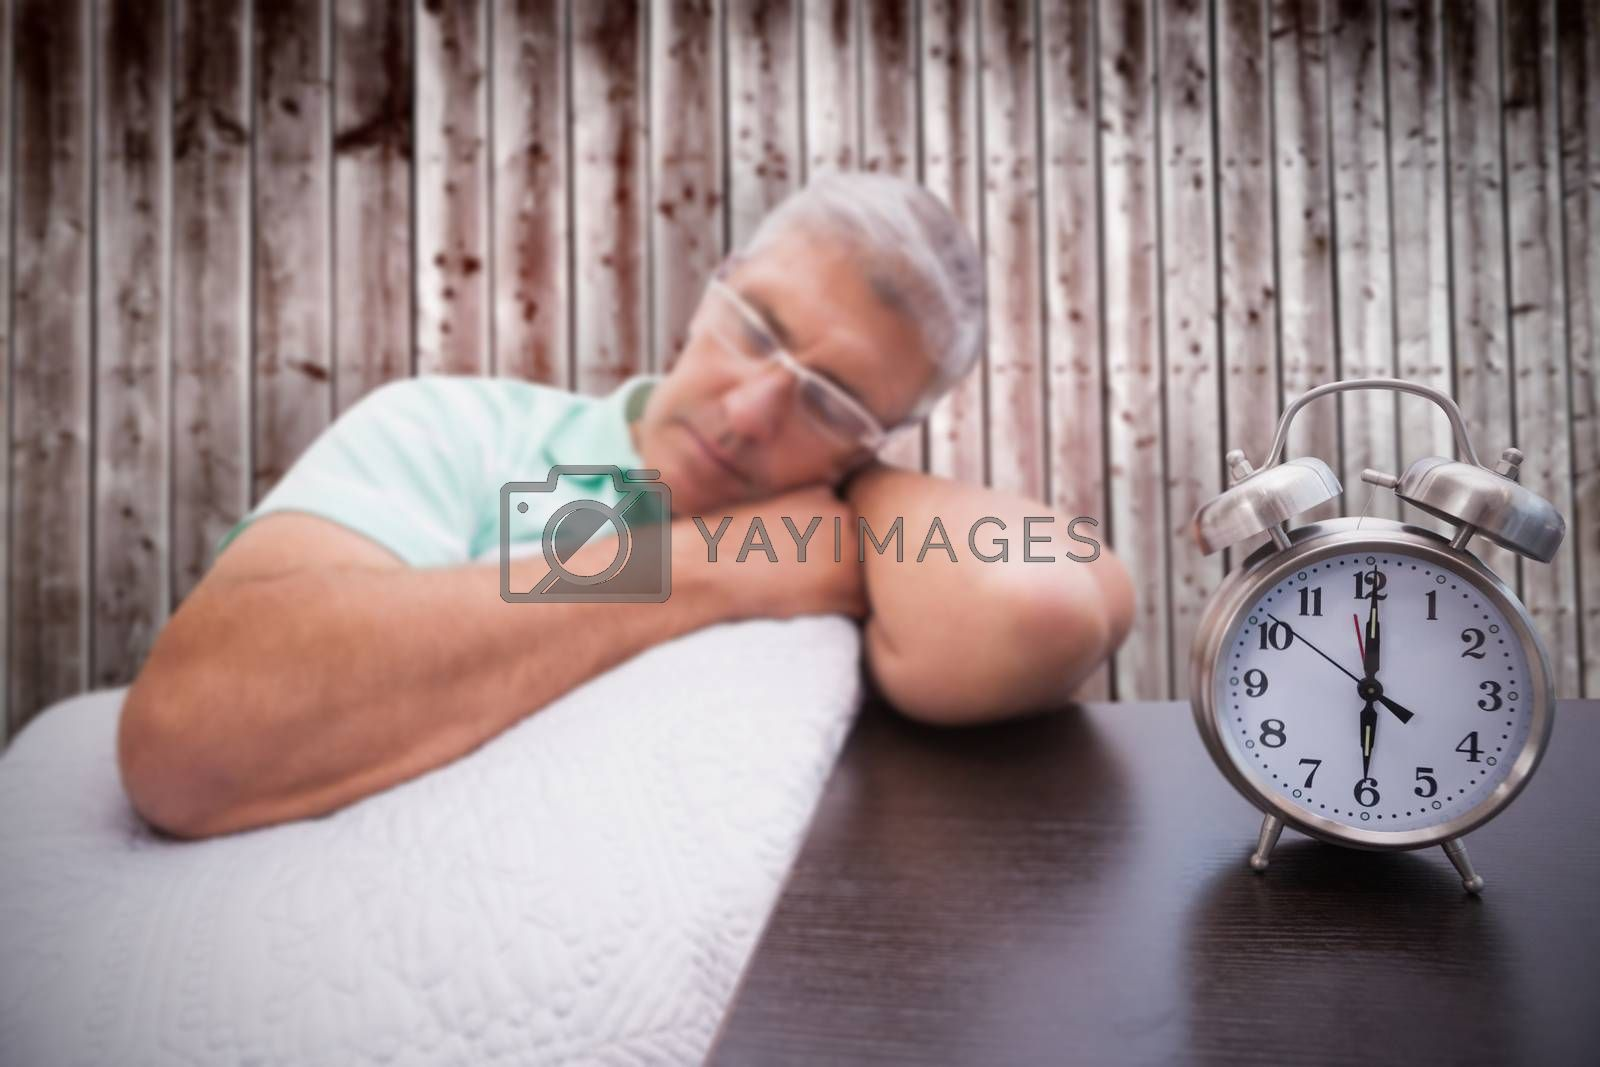 Man napping on couch against wooden planks